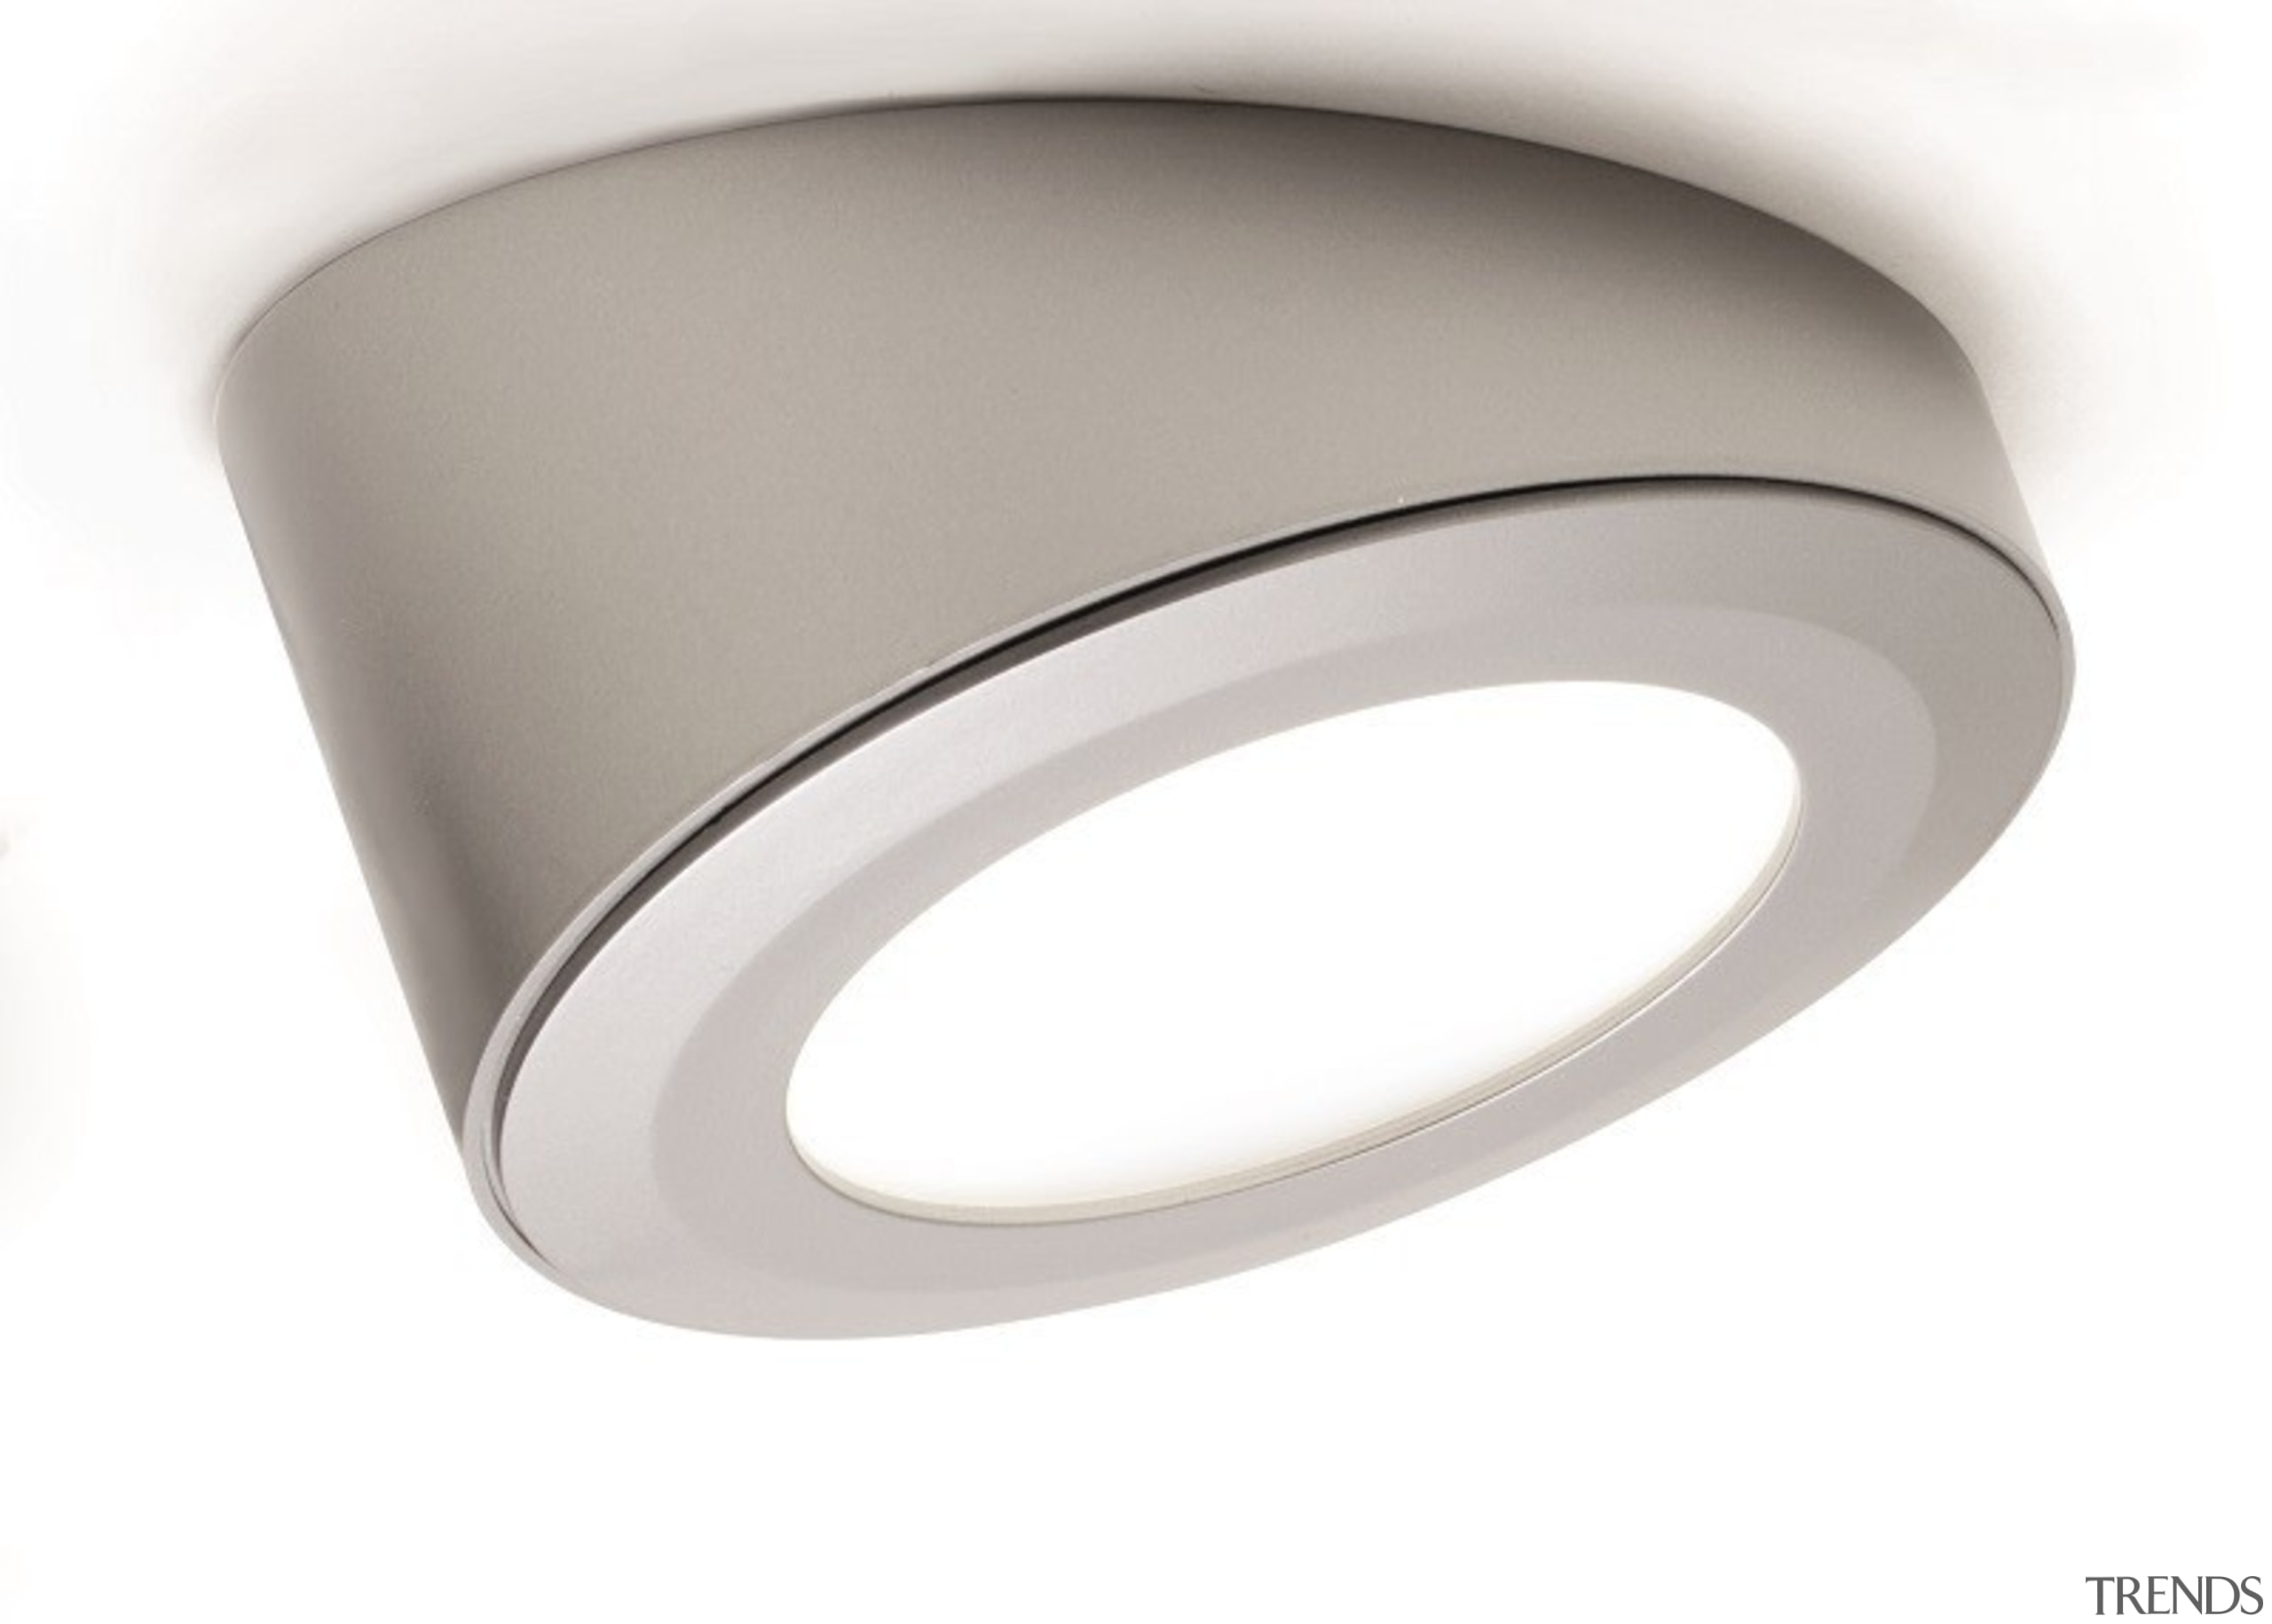 Designed in Italy to comply with Australian/New Zealand lighting, product design, white